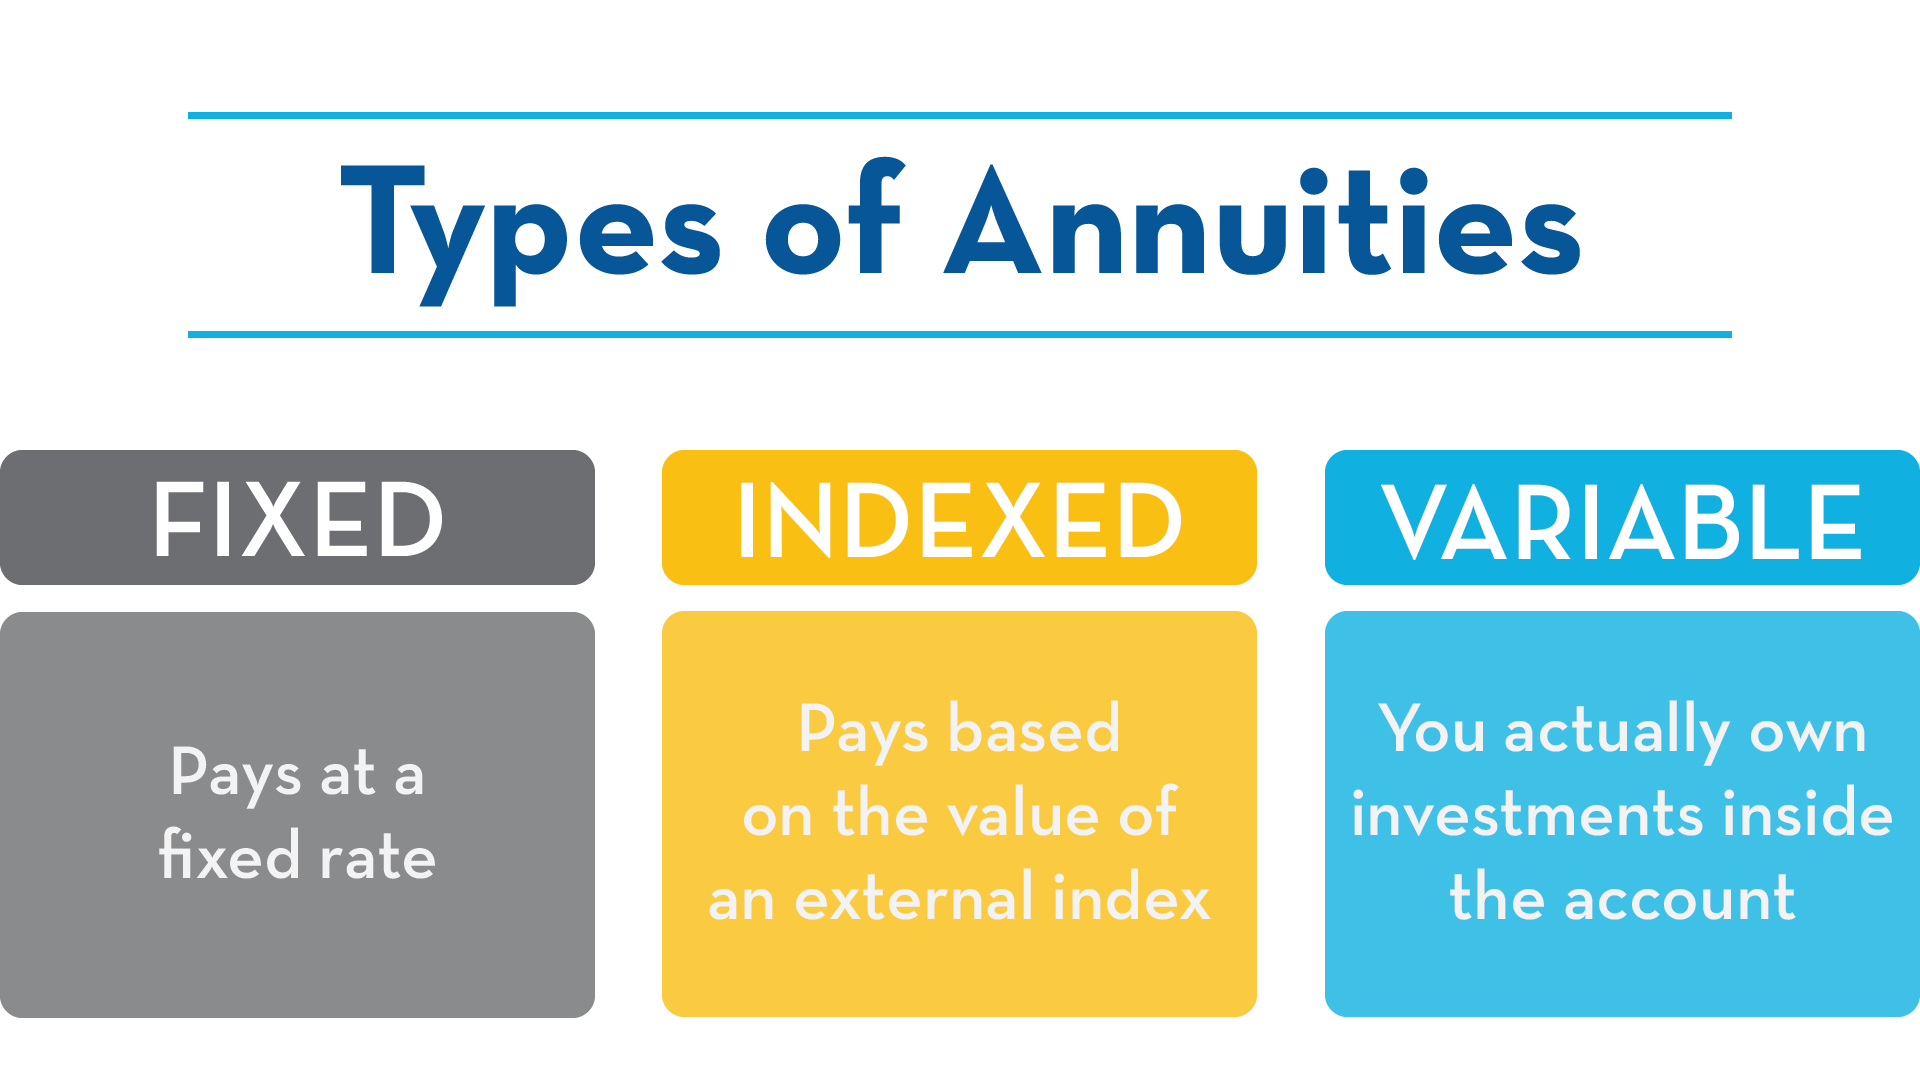 Types of annuitues